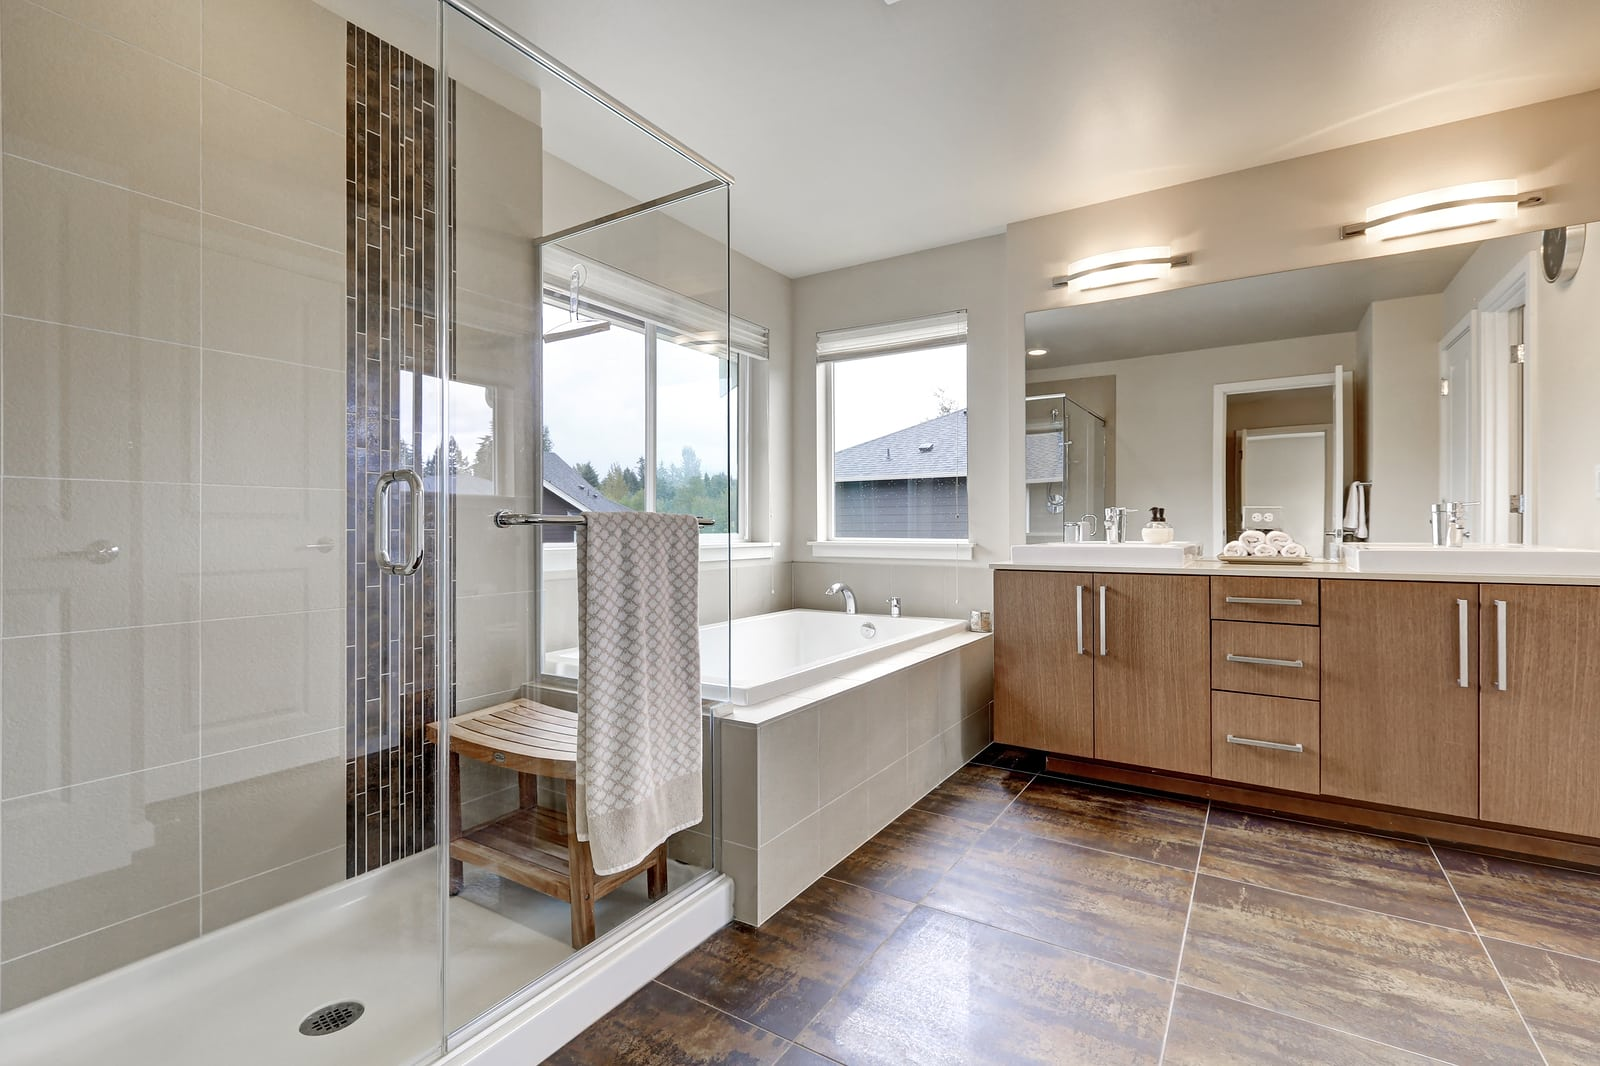 White modern bathroom interior in brand-new house. Double sink vanity with large mirror walk-in shower white bath tub and brown tile floor.